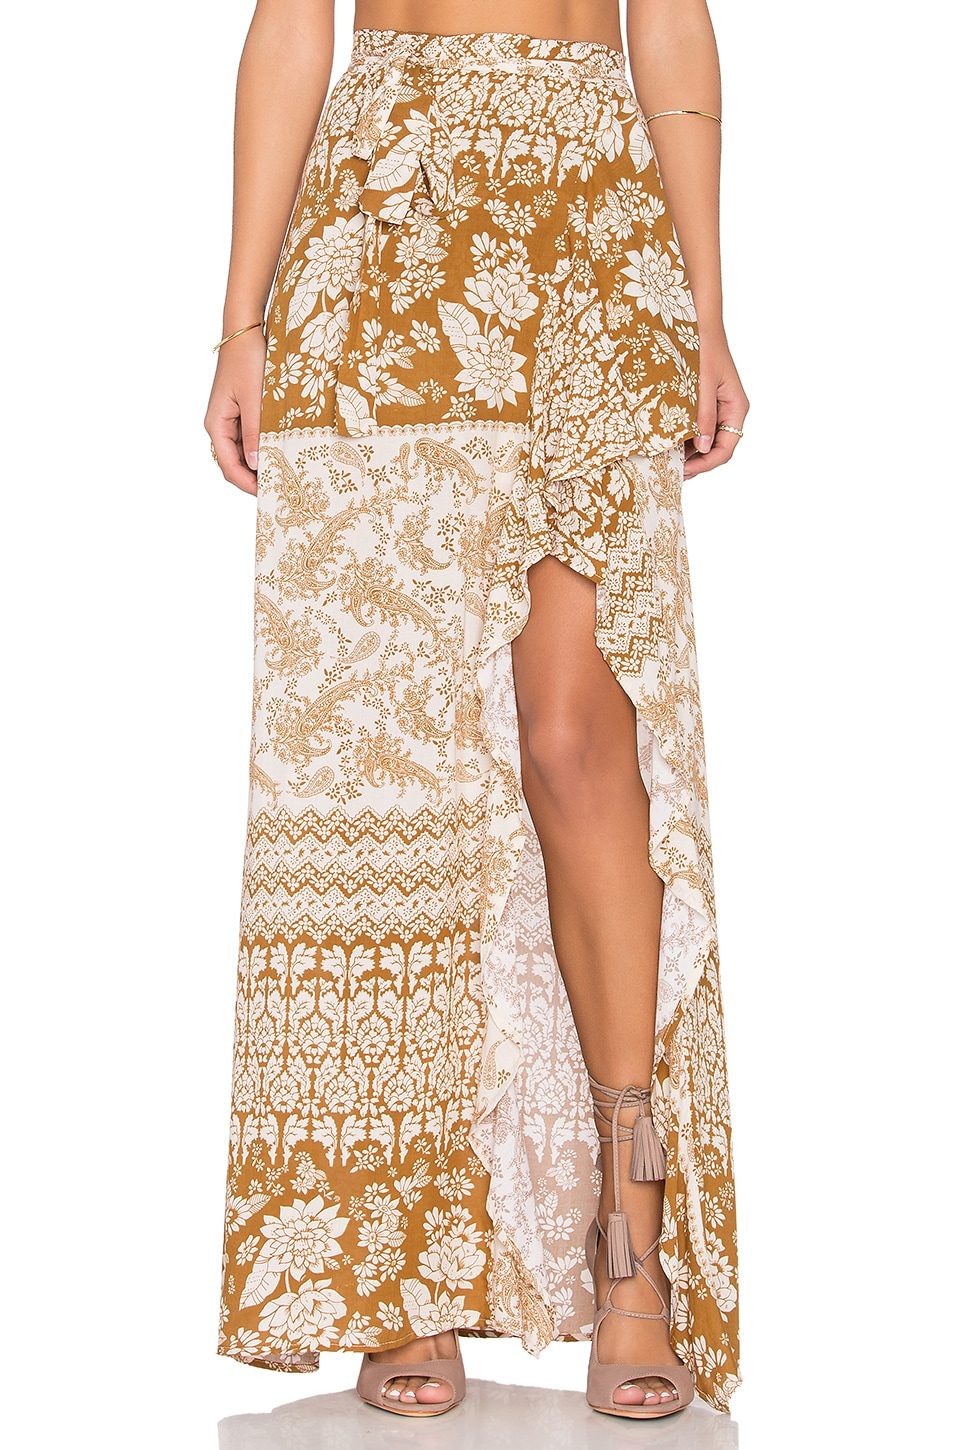 NOVELLA ROYALE Patti Maxi Skirt in Rust Hazely